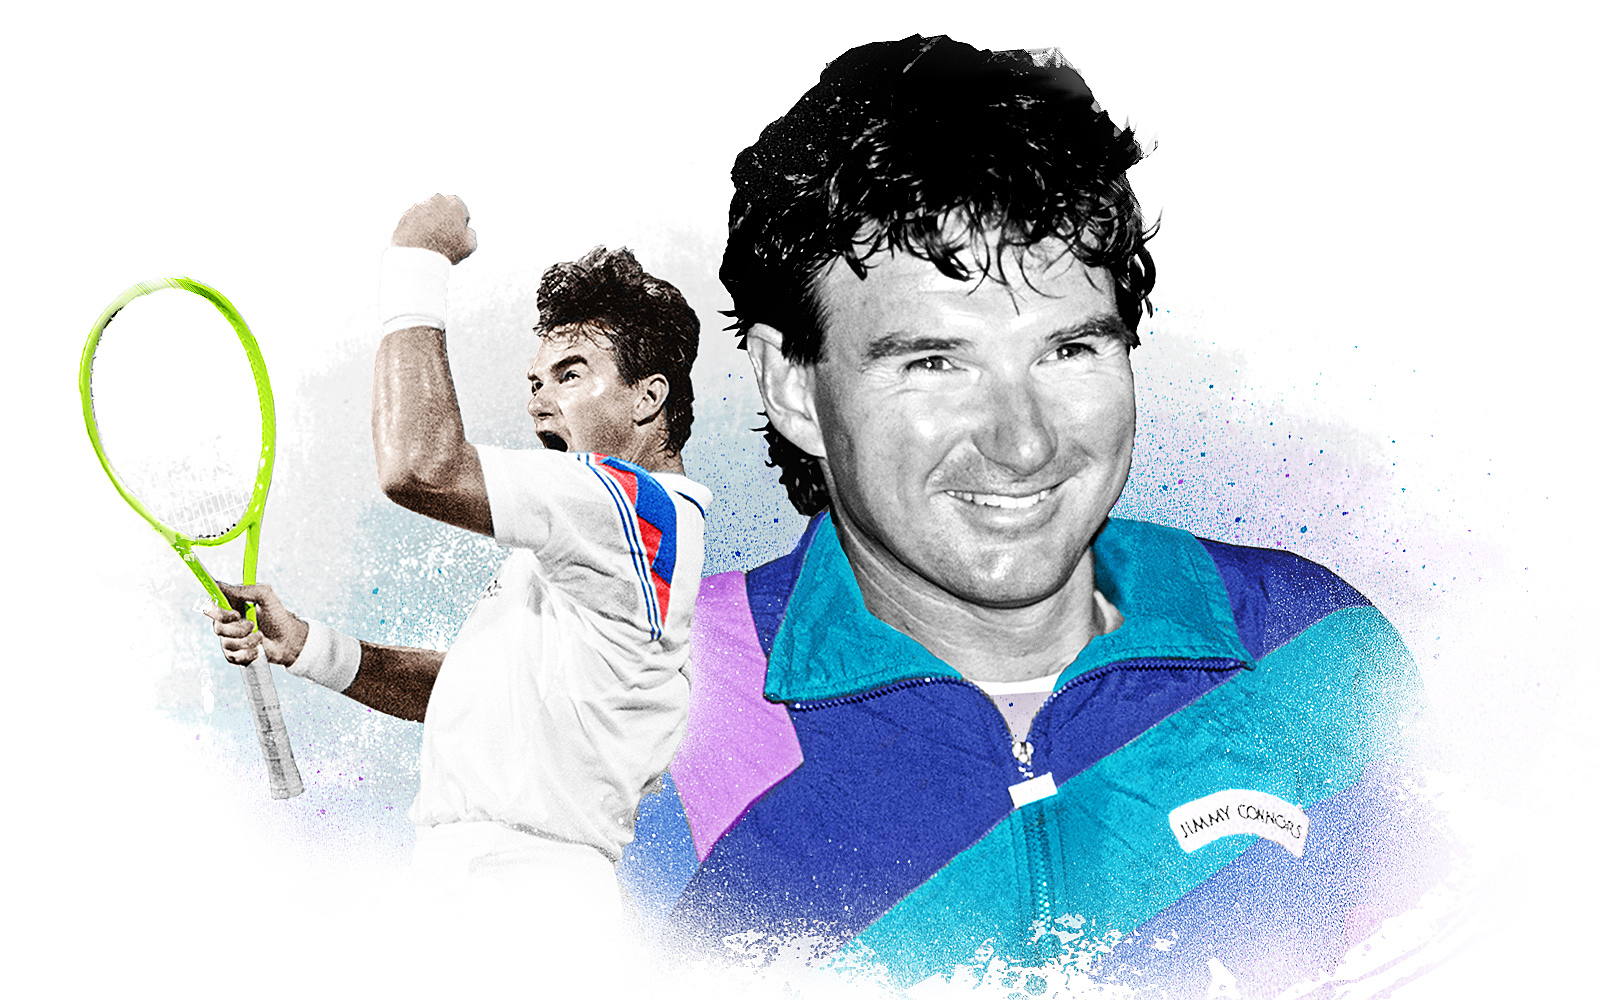 the oral history of Jimmy Connors' improbable US Open run